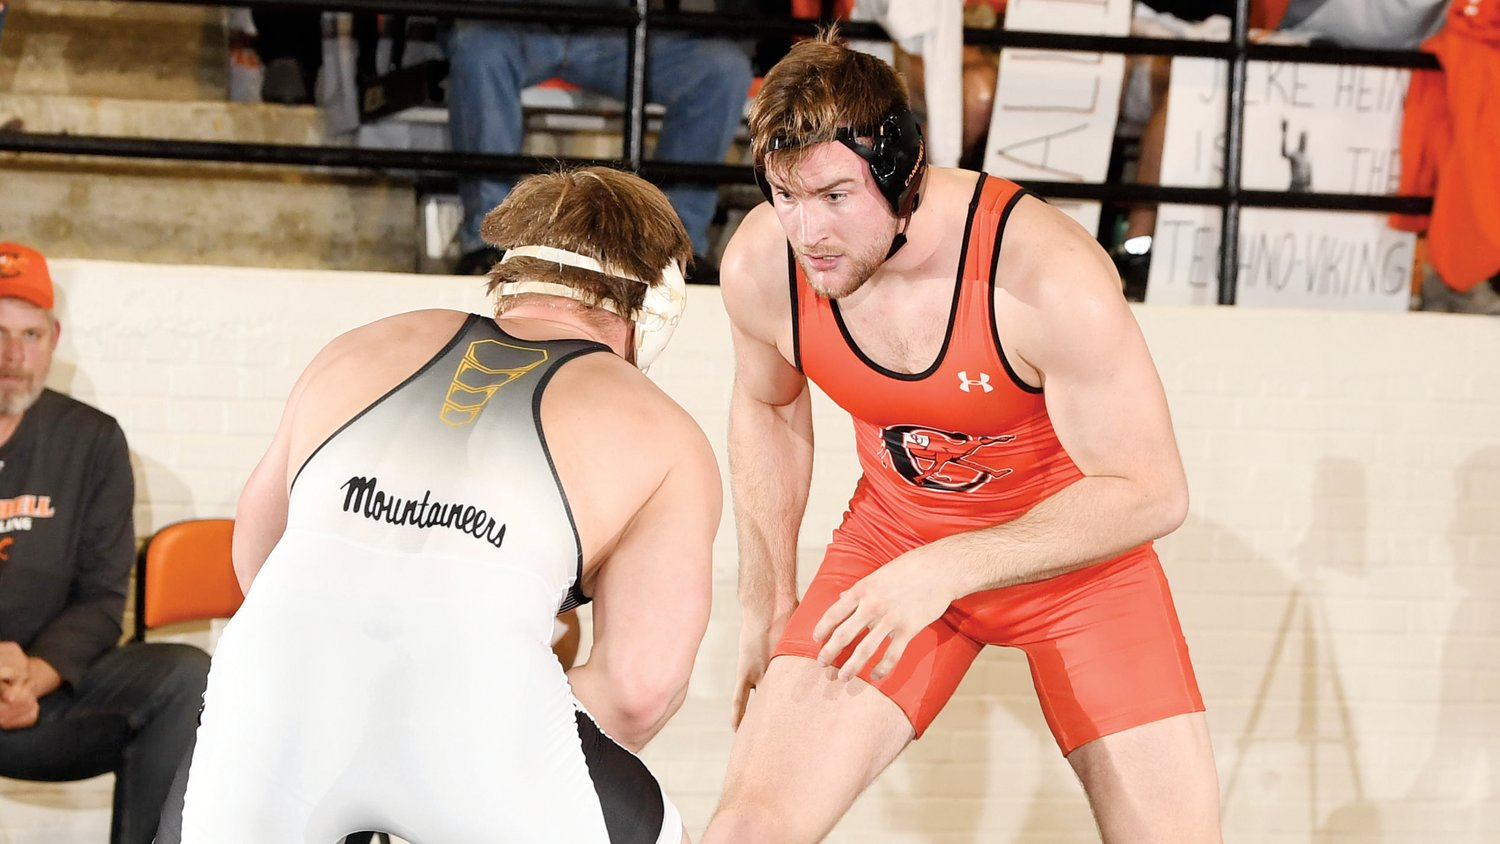 Campbell's Jere Heino has been named Southern Conference Wrestler of the Week.